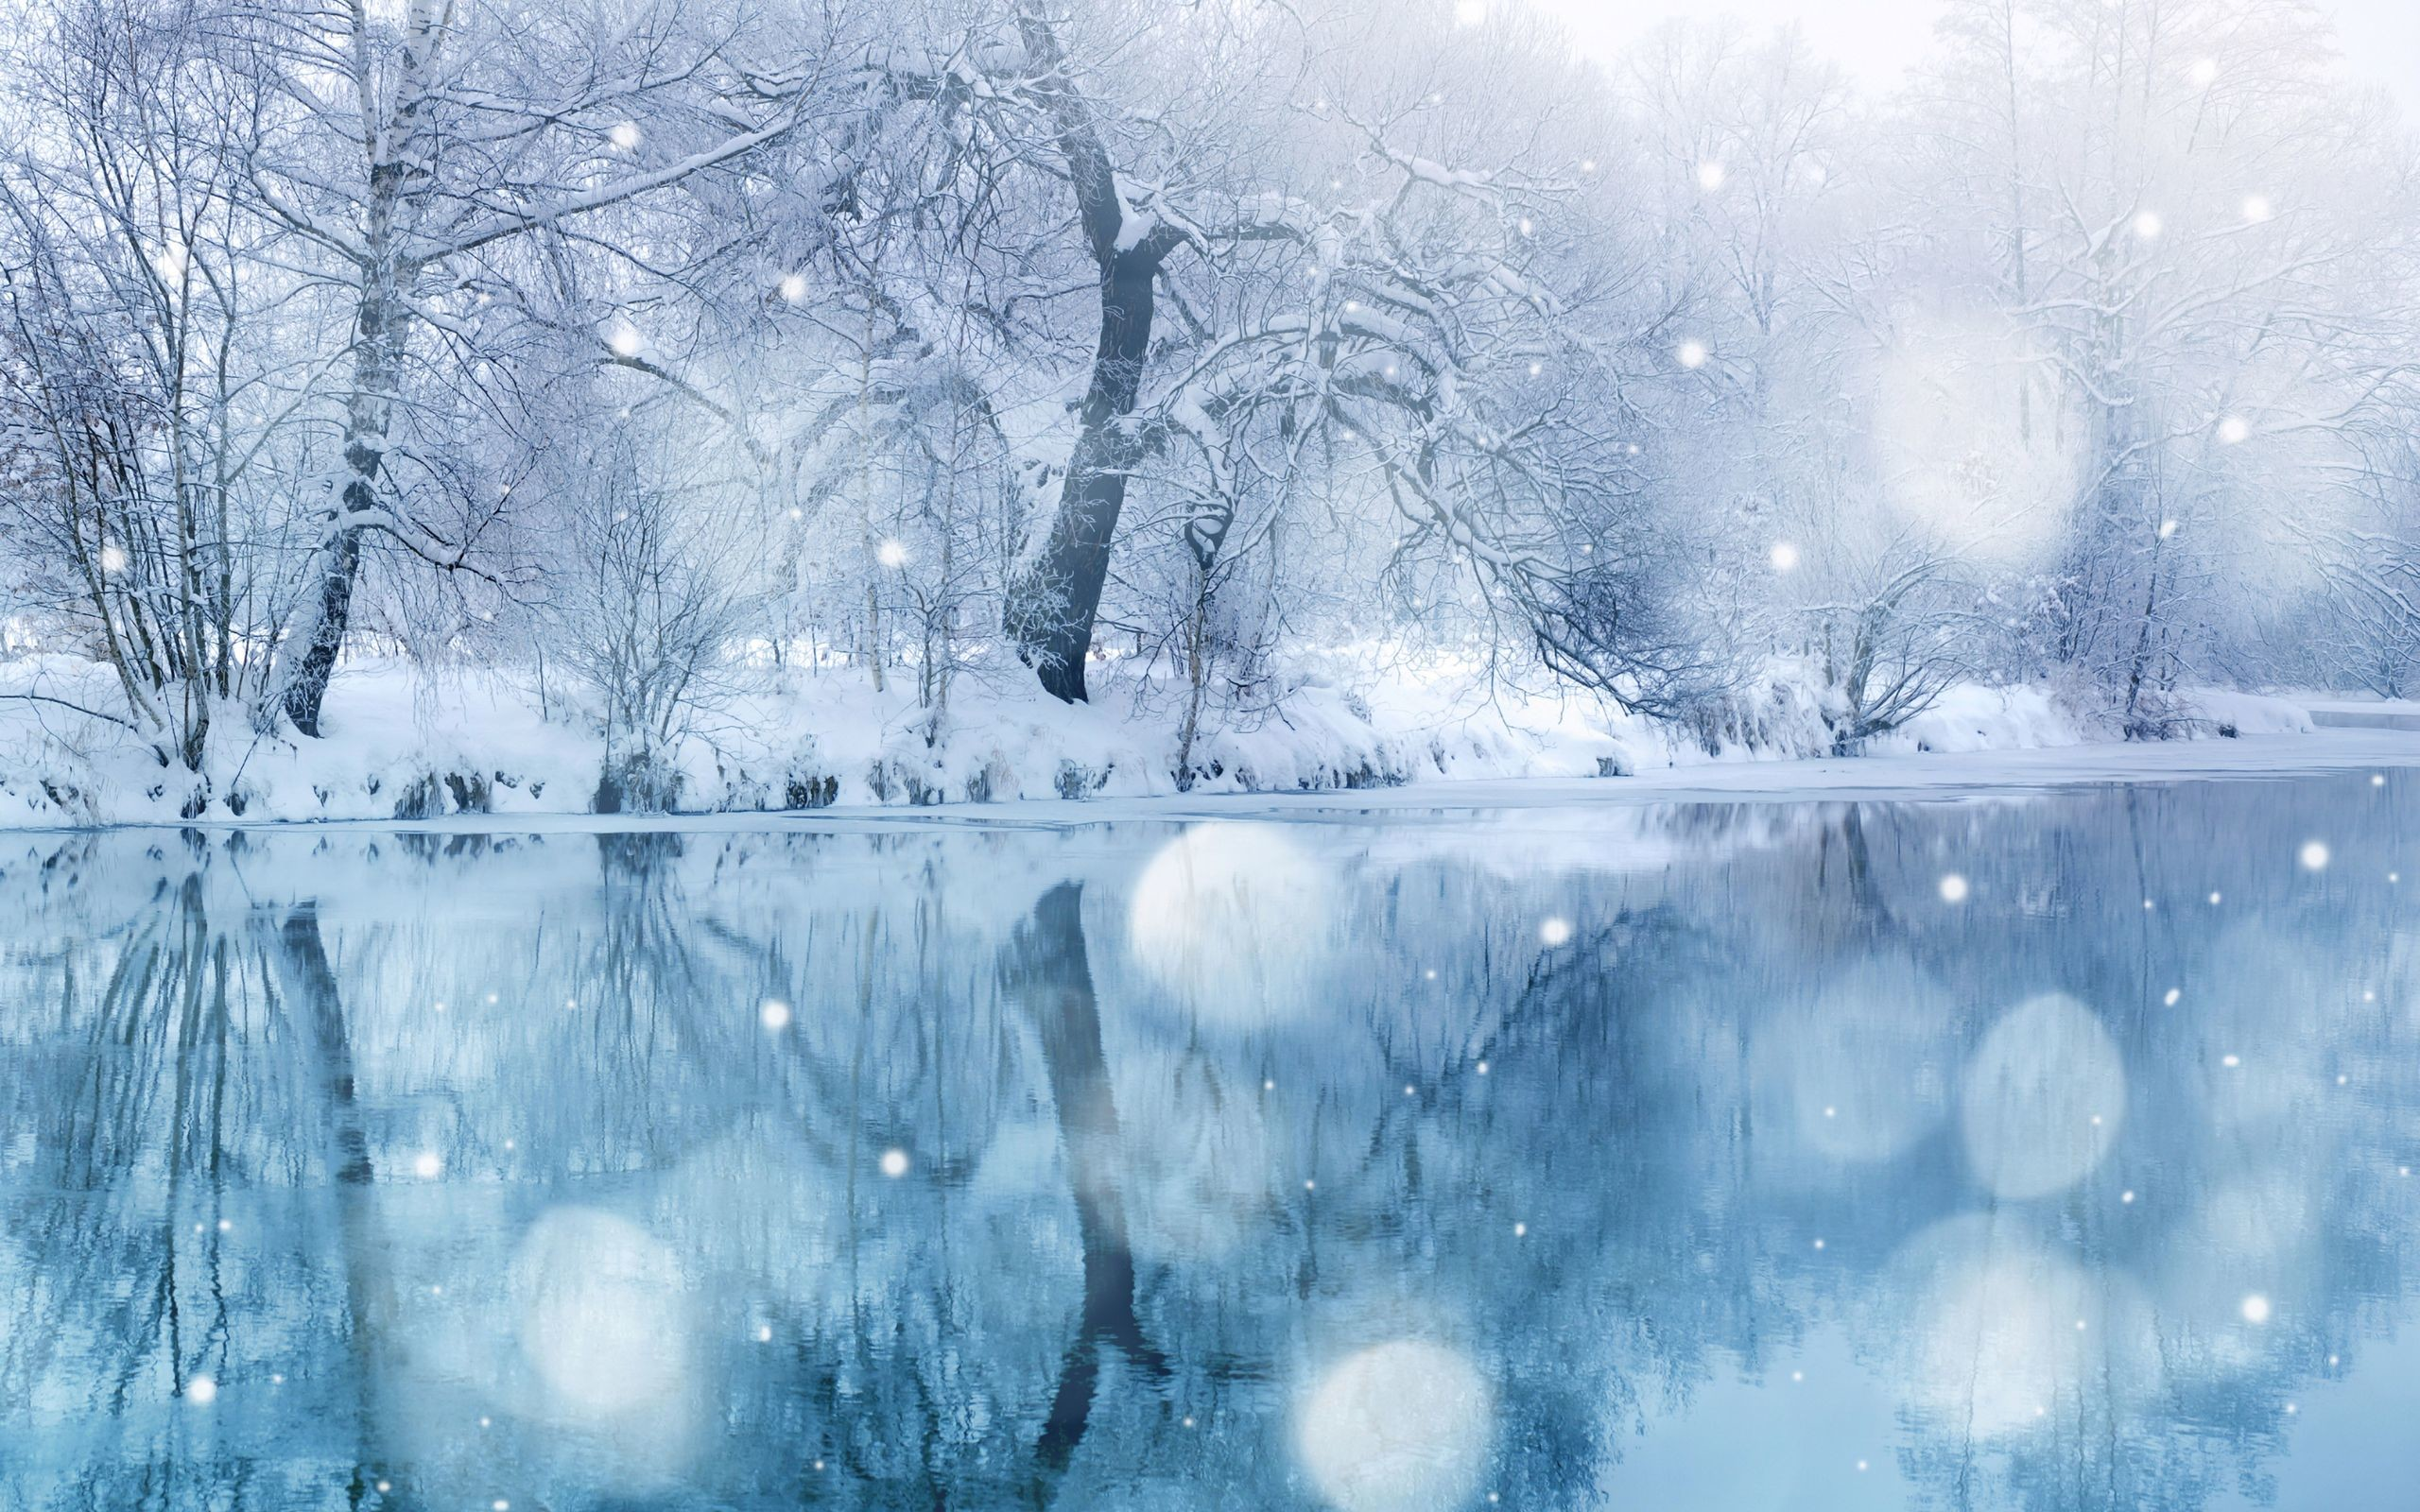 Res: 2560x1600, Winter-Wonderland-Desktop-Wallpapers-Gallery-(68-Plus)-PIC-WPW5010678